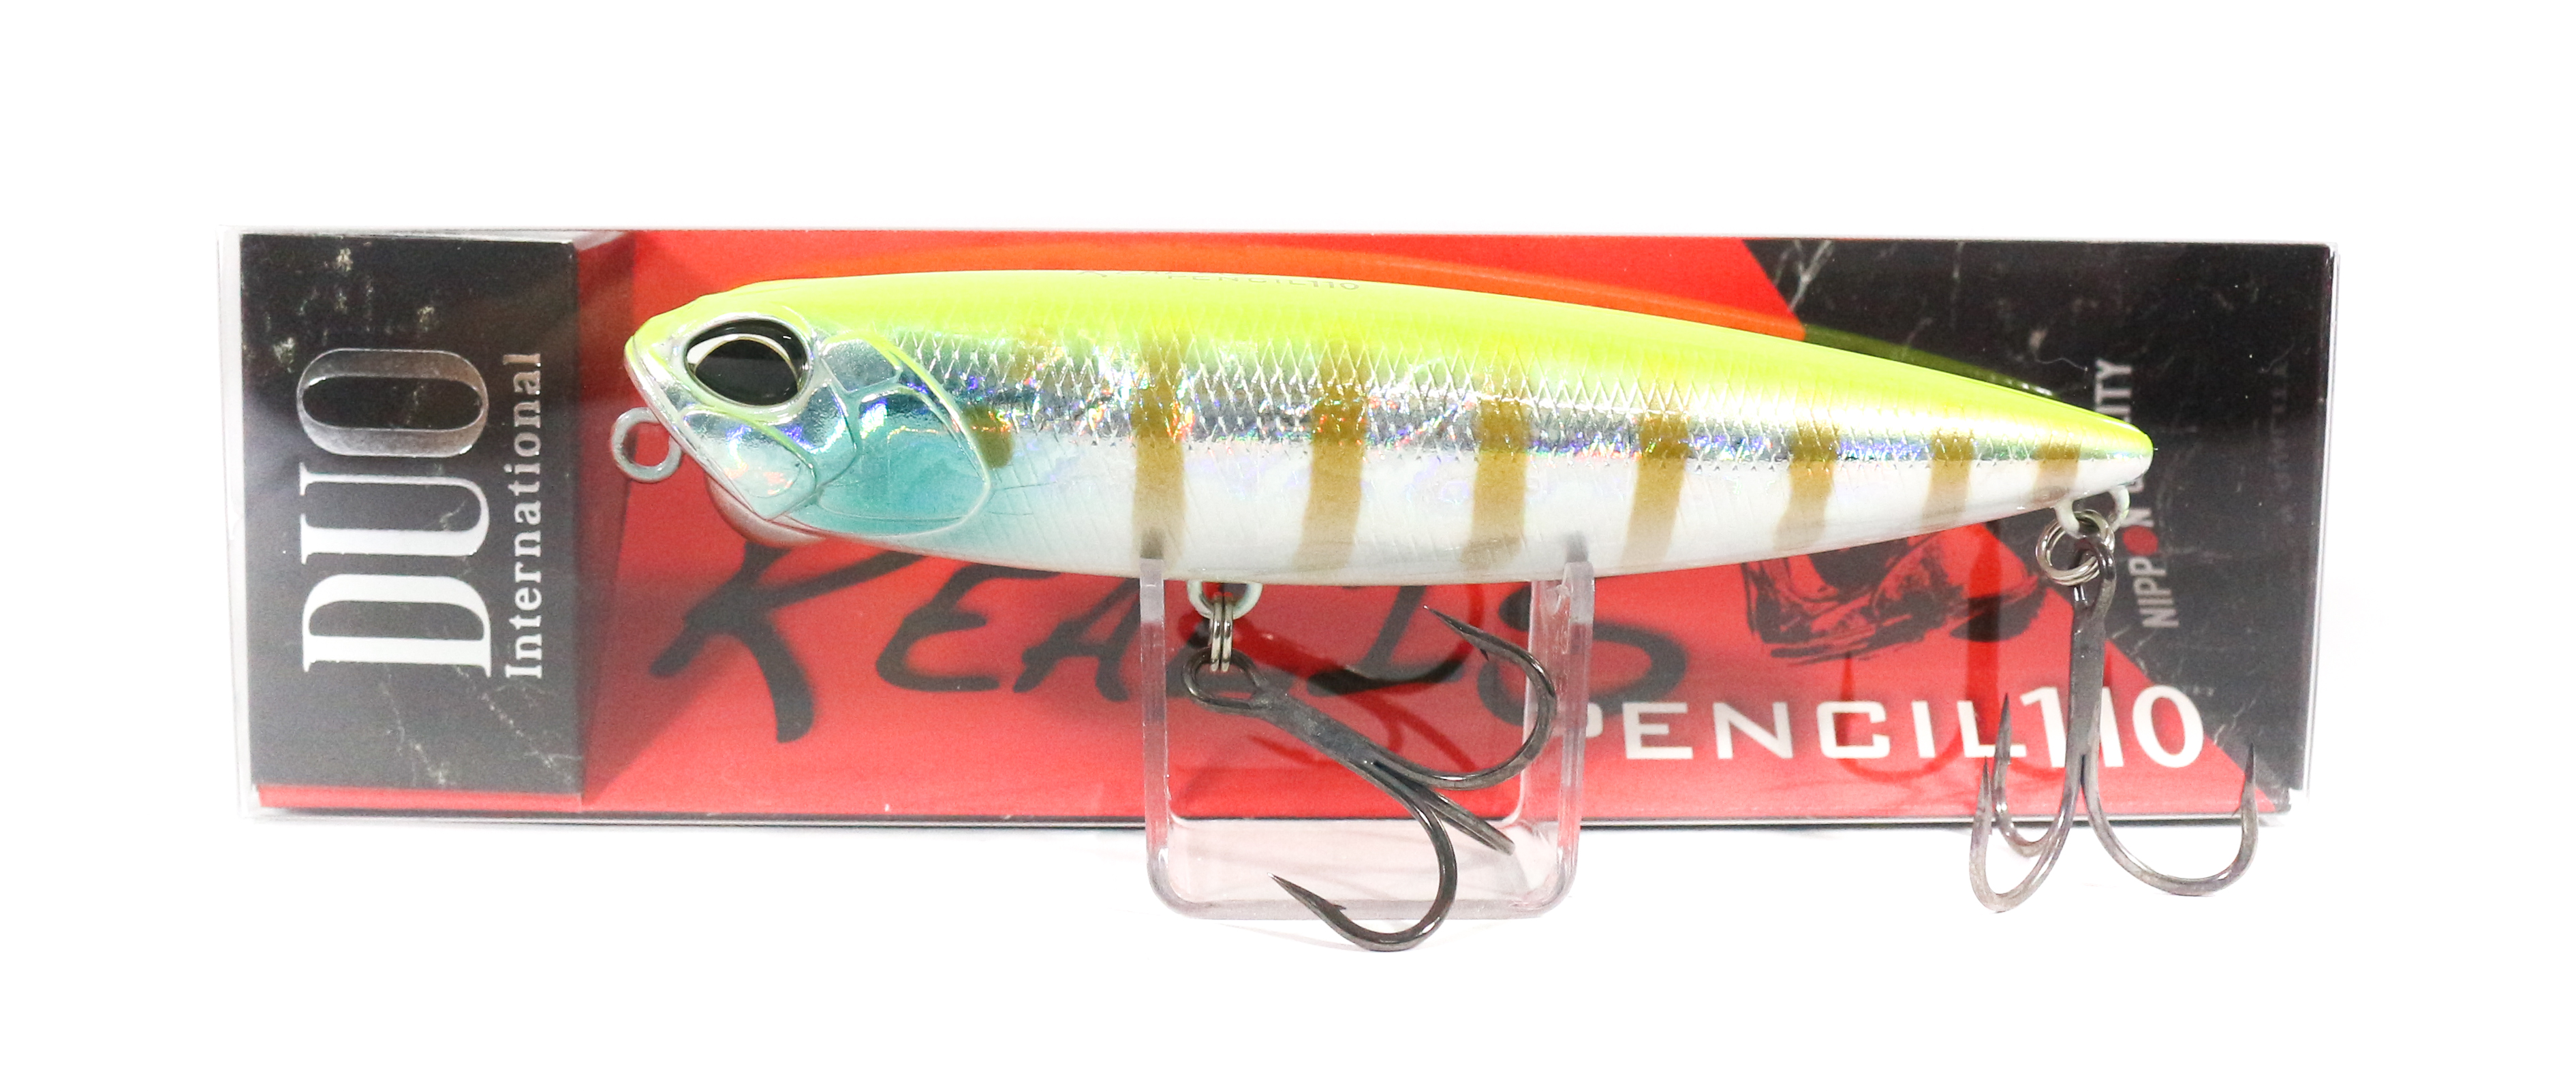 Duo Realis Pencil 110 Topwater Floating Lure ADA3066 (1798)